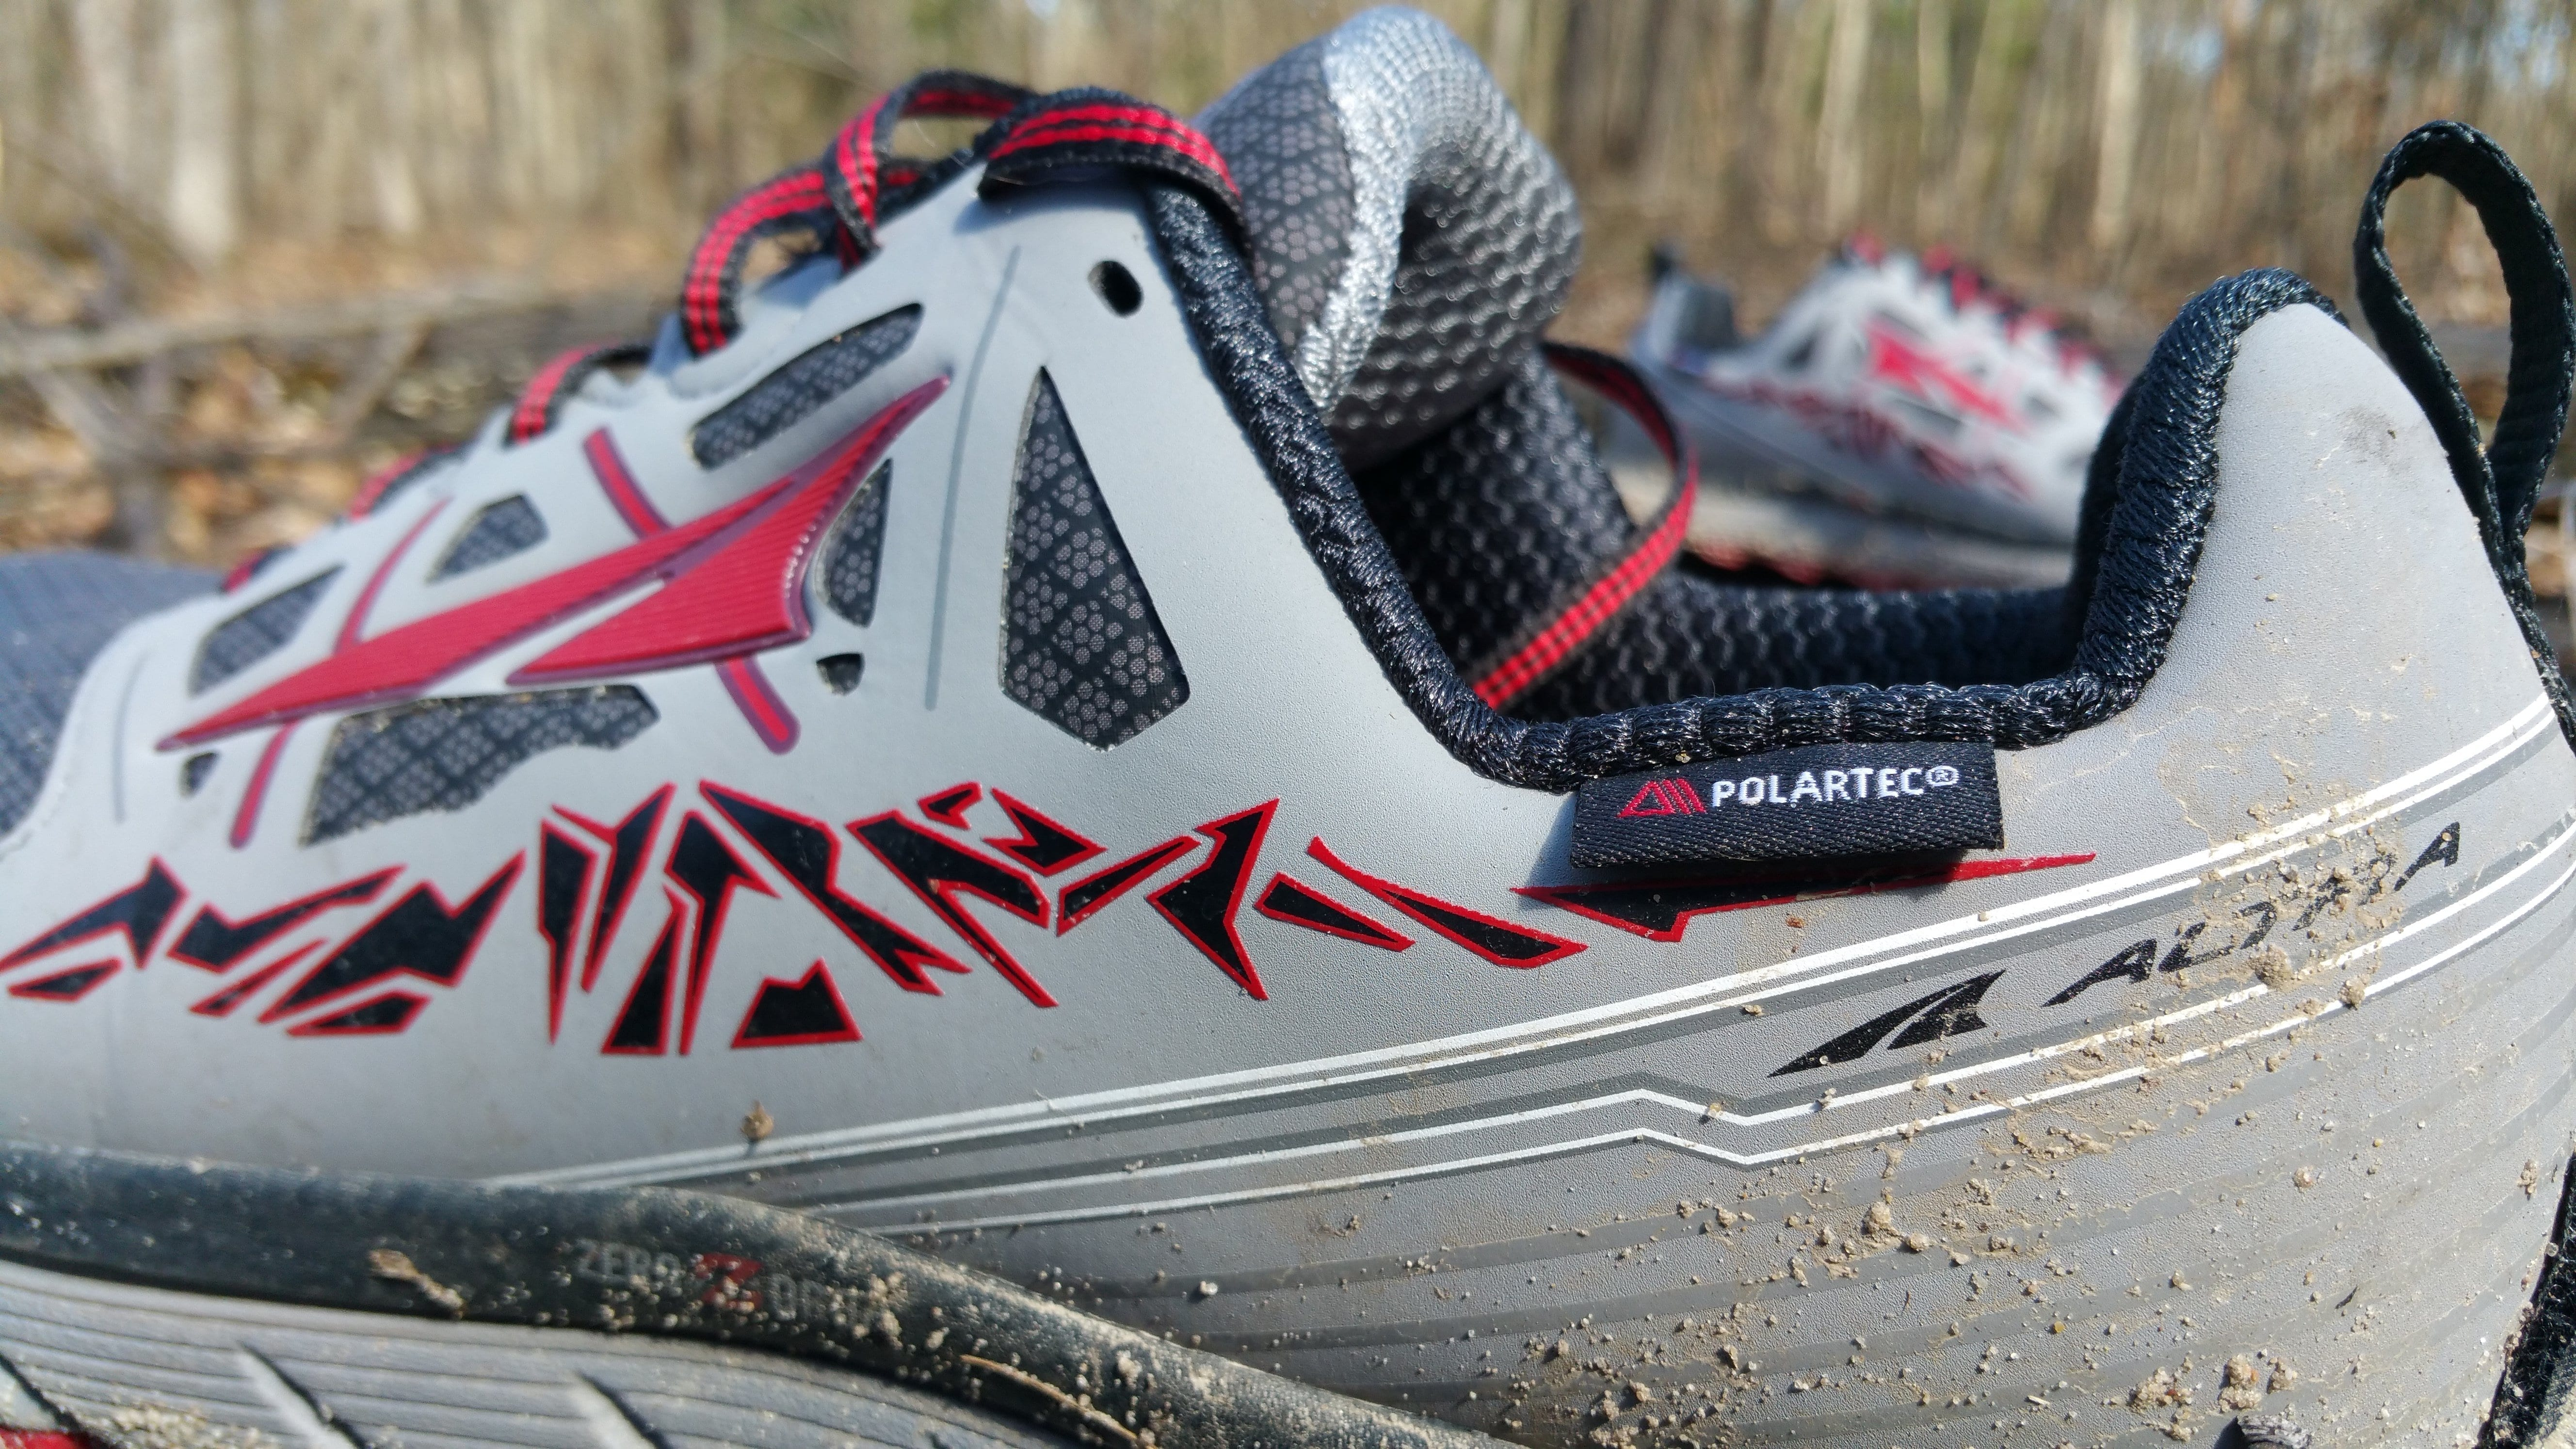 timeless design 05ab8 afa9e Altra Lone Peak 3.0 NeoShell Review - Active Gear Review